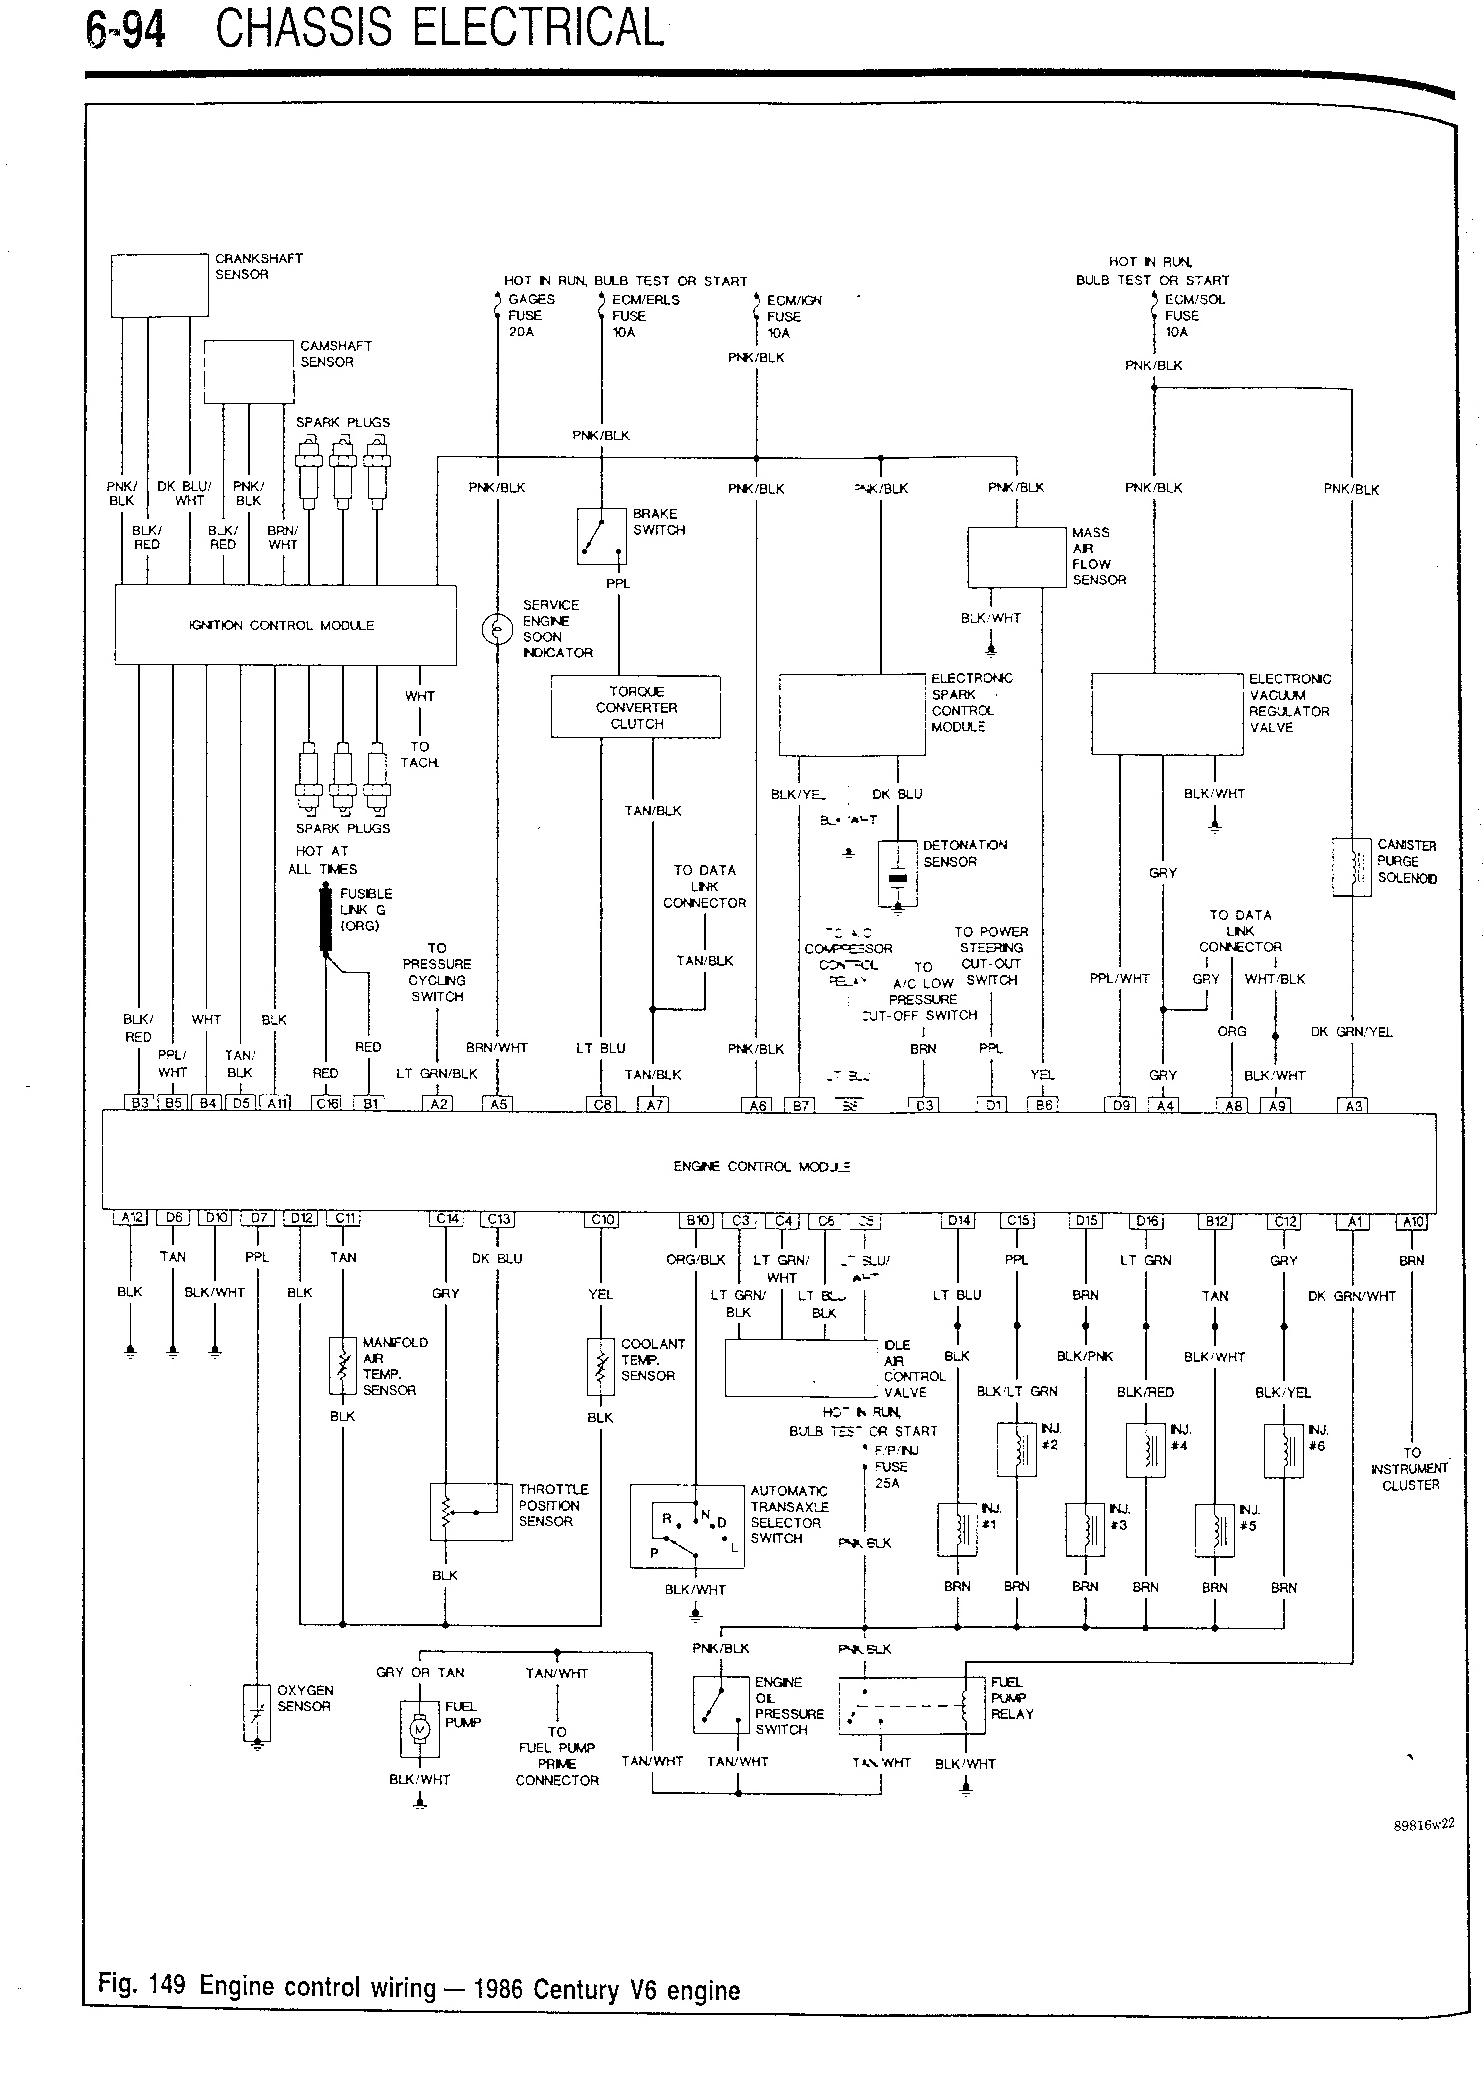 Magnificent 72 vega wiring diagram pictures inspiration electrical vega wiring diagram 2000 ford windstar engine hose diagram cheapraybanclubmaster Choice Image